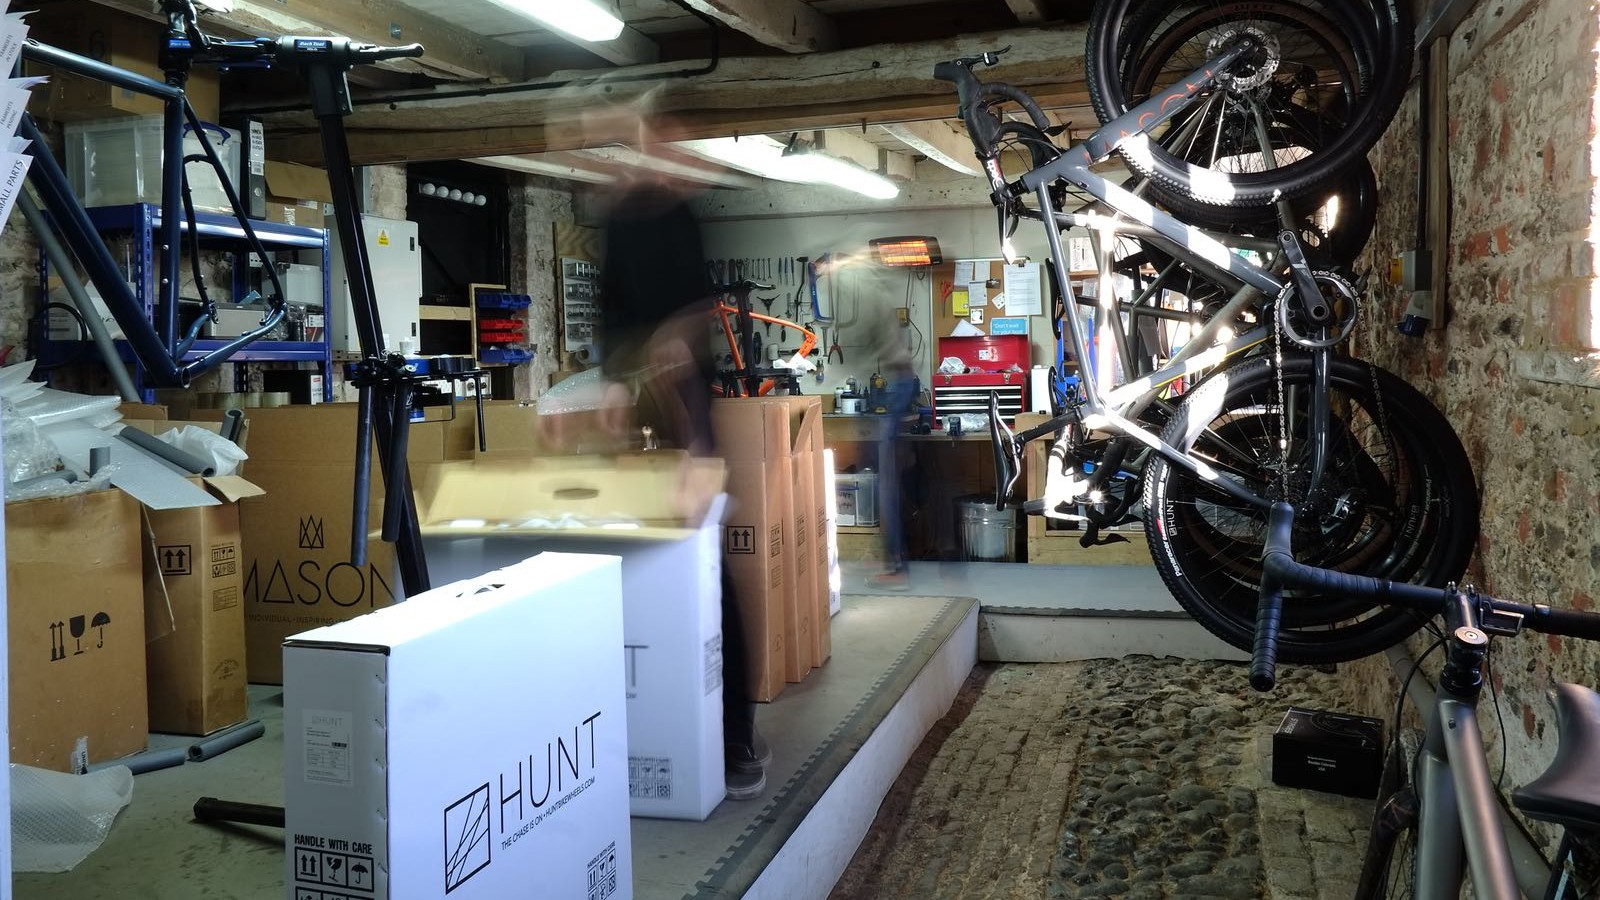 A look inside the old barn, which is Mason Cycles' slightly unorthodox headquarters